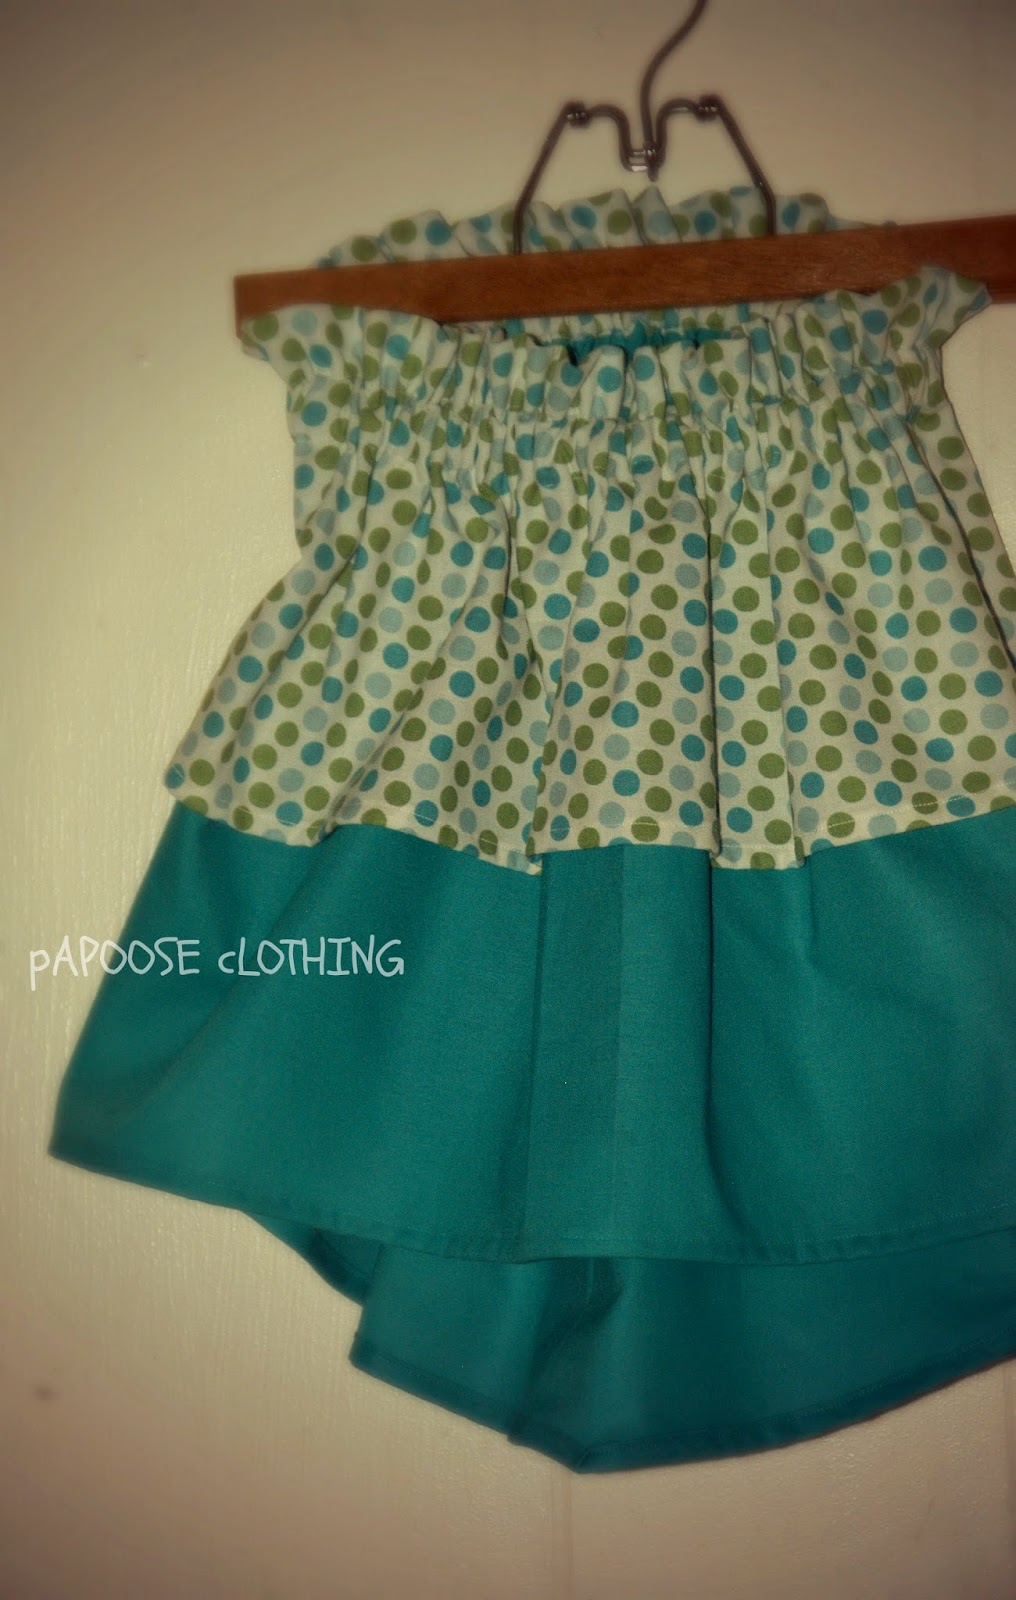 http://www.papooseclothing.com/store/p31/Shrimp_Po%27boy_Polka_Dot_Cascade_Ruffle_Top_Skirt.html